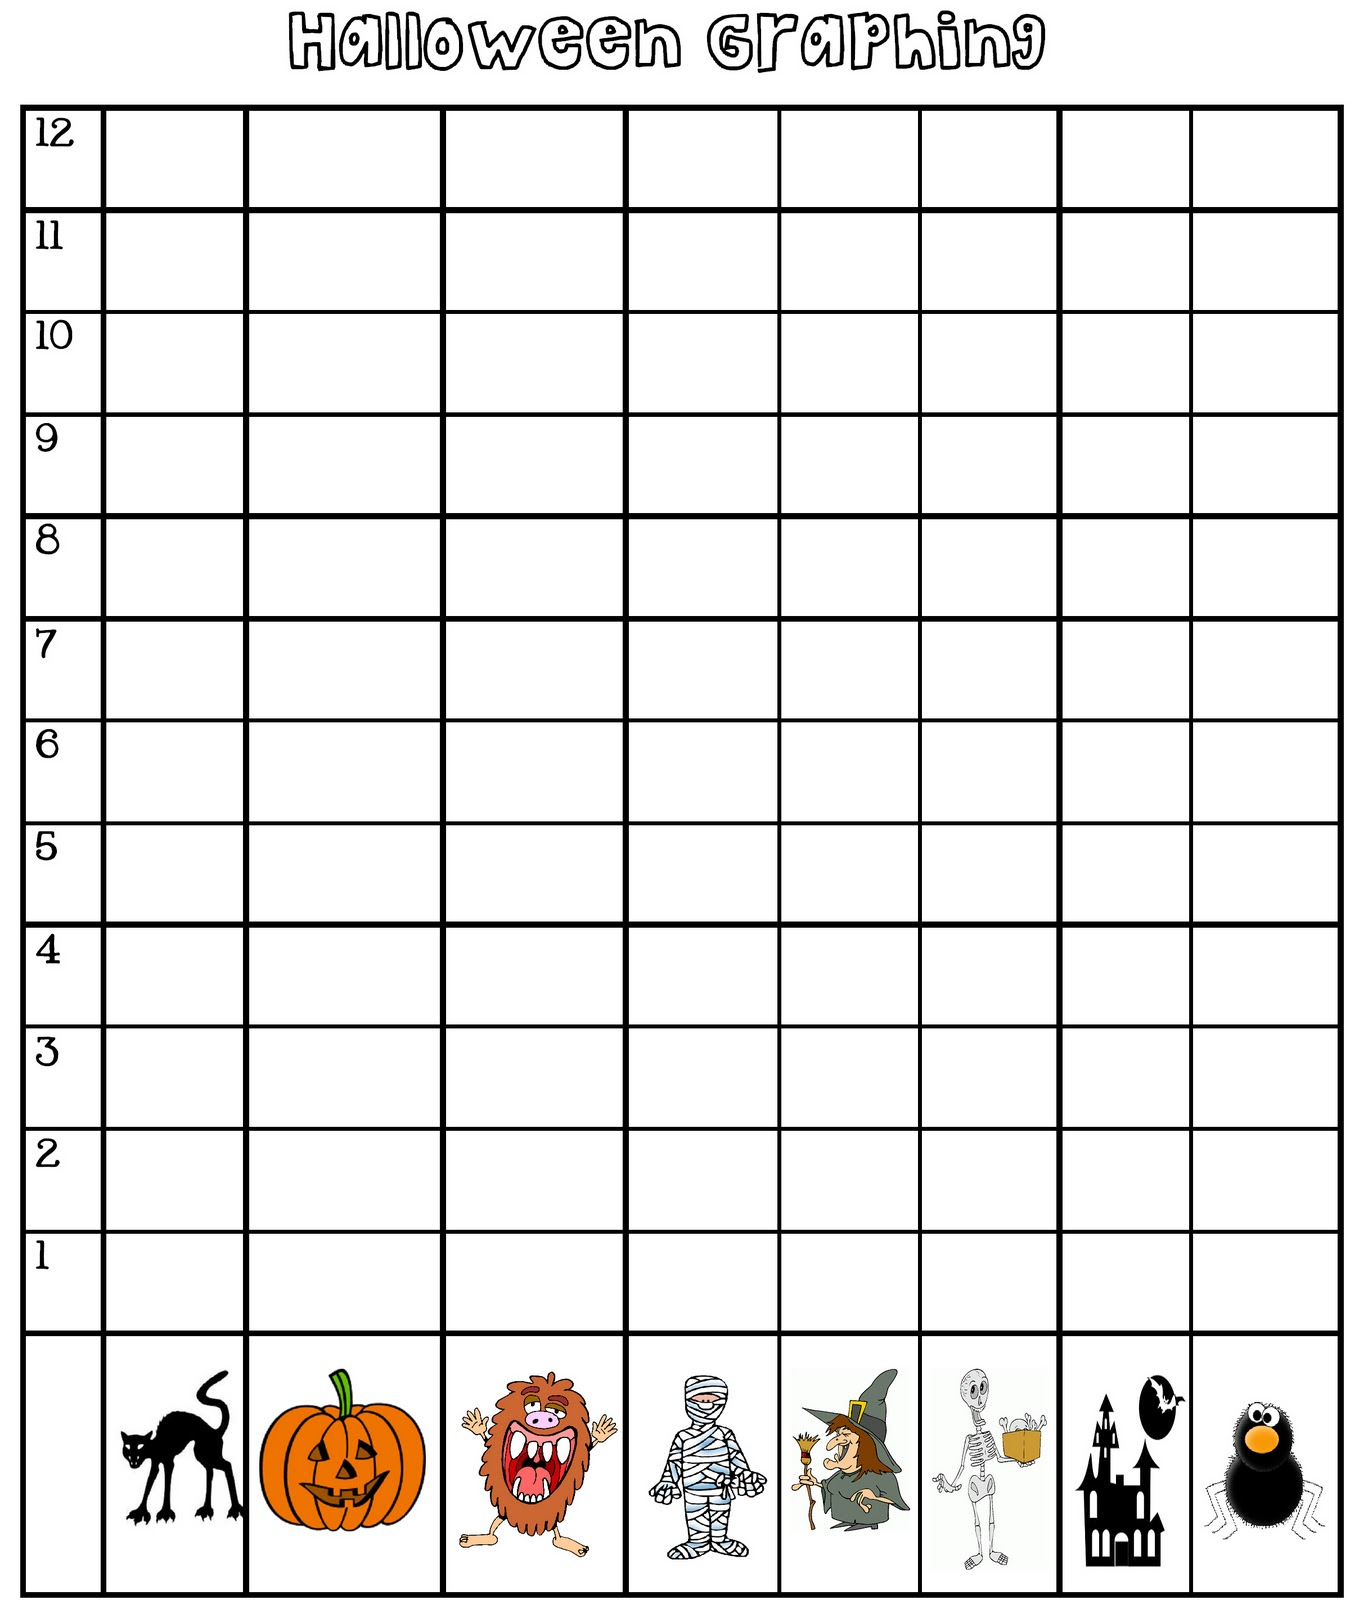 worksheet Halloween Graphing outside the box halloween graphing happy halloween